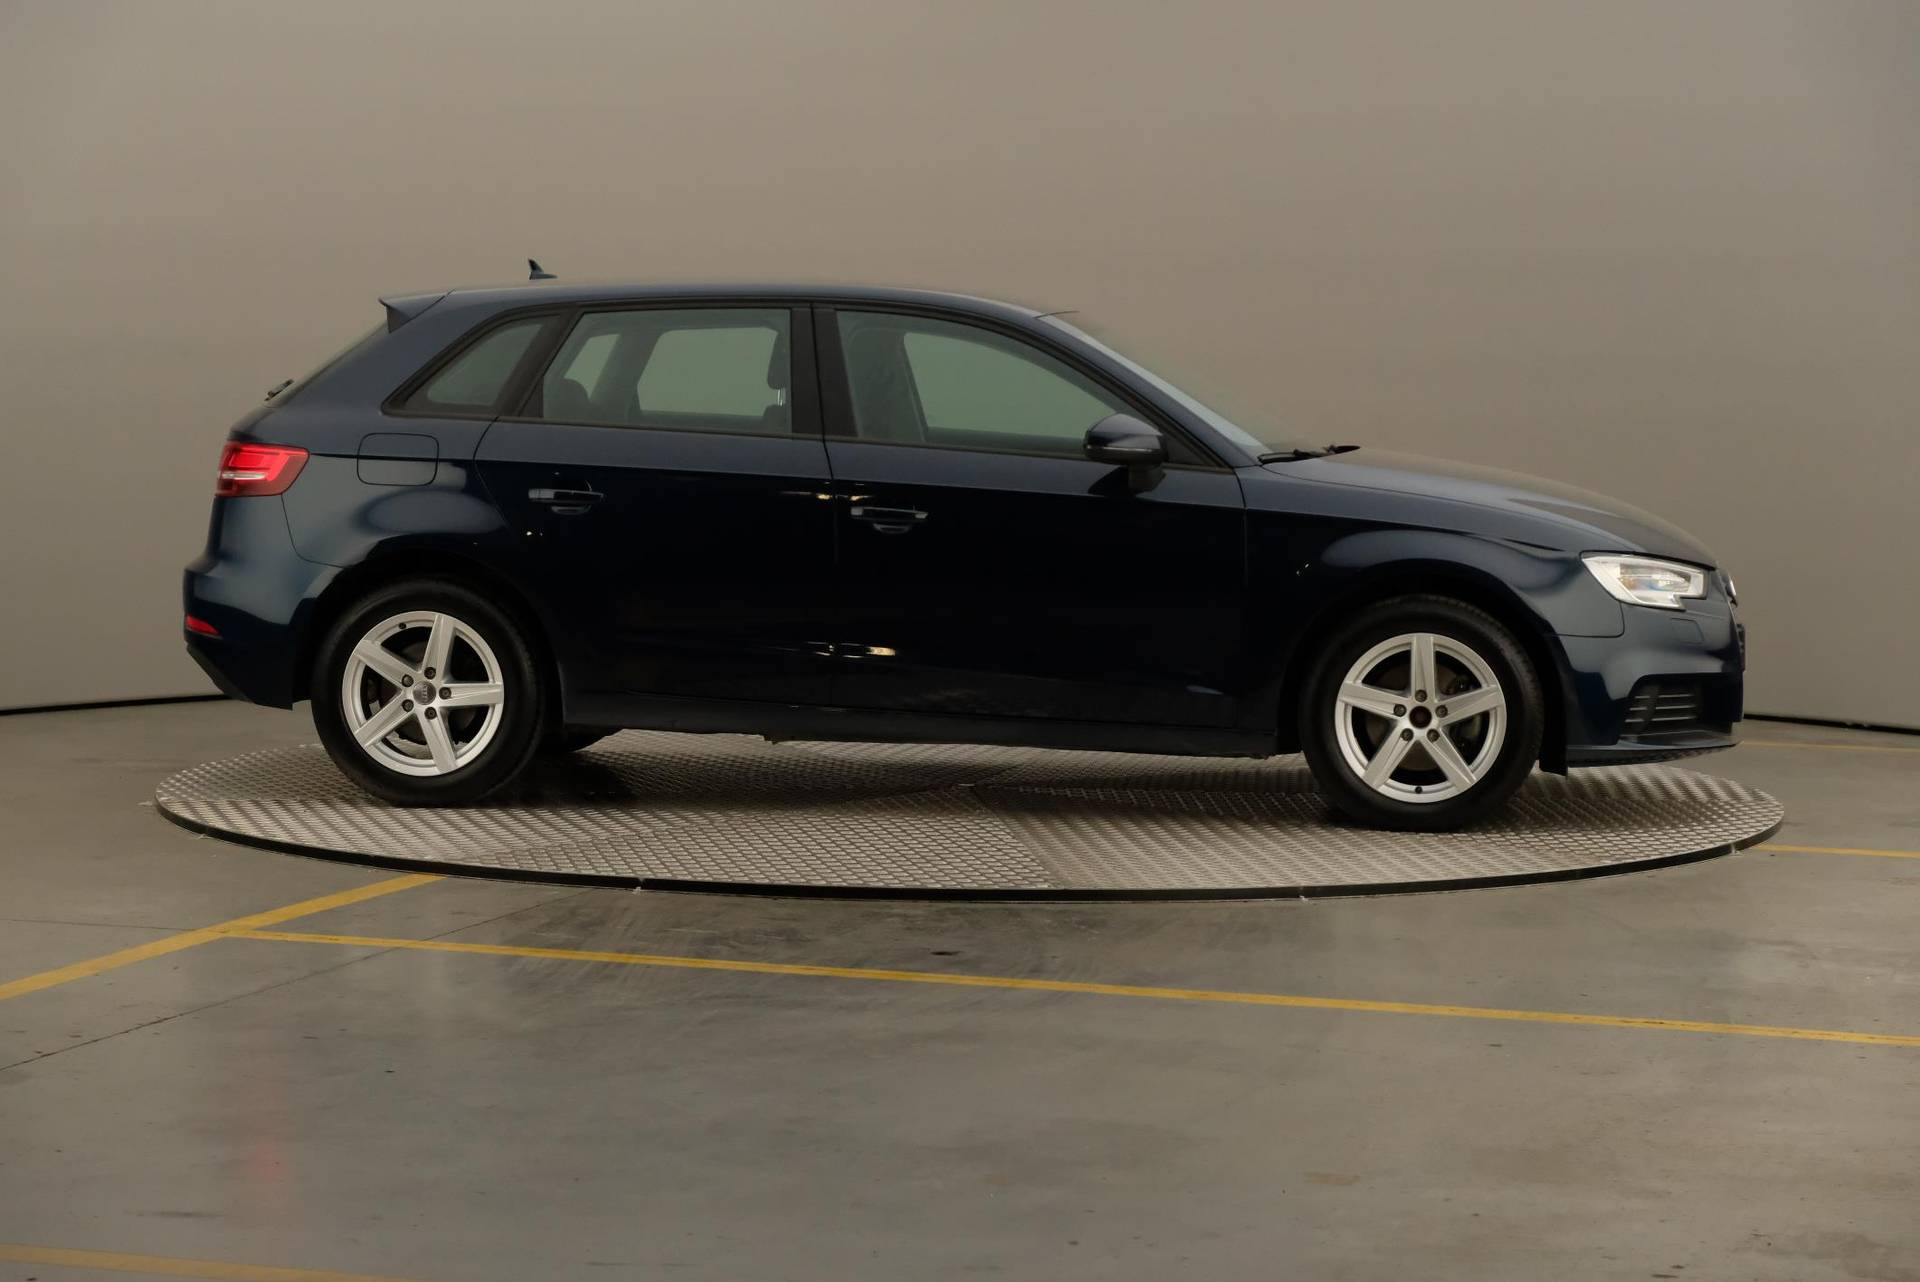 Audi A3 1.6 TDi Pack Intuition Plus Euro6, 360-image23